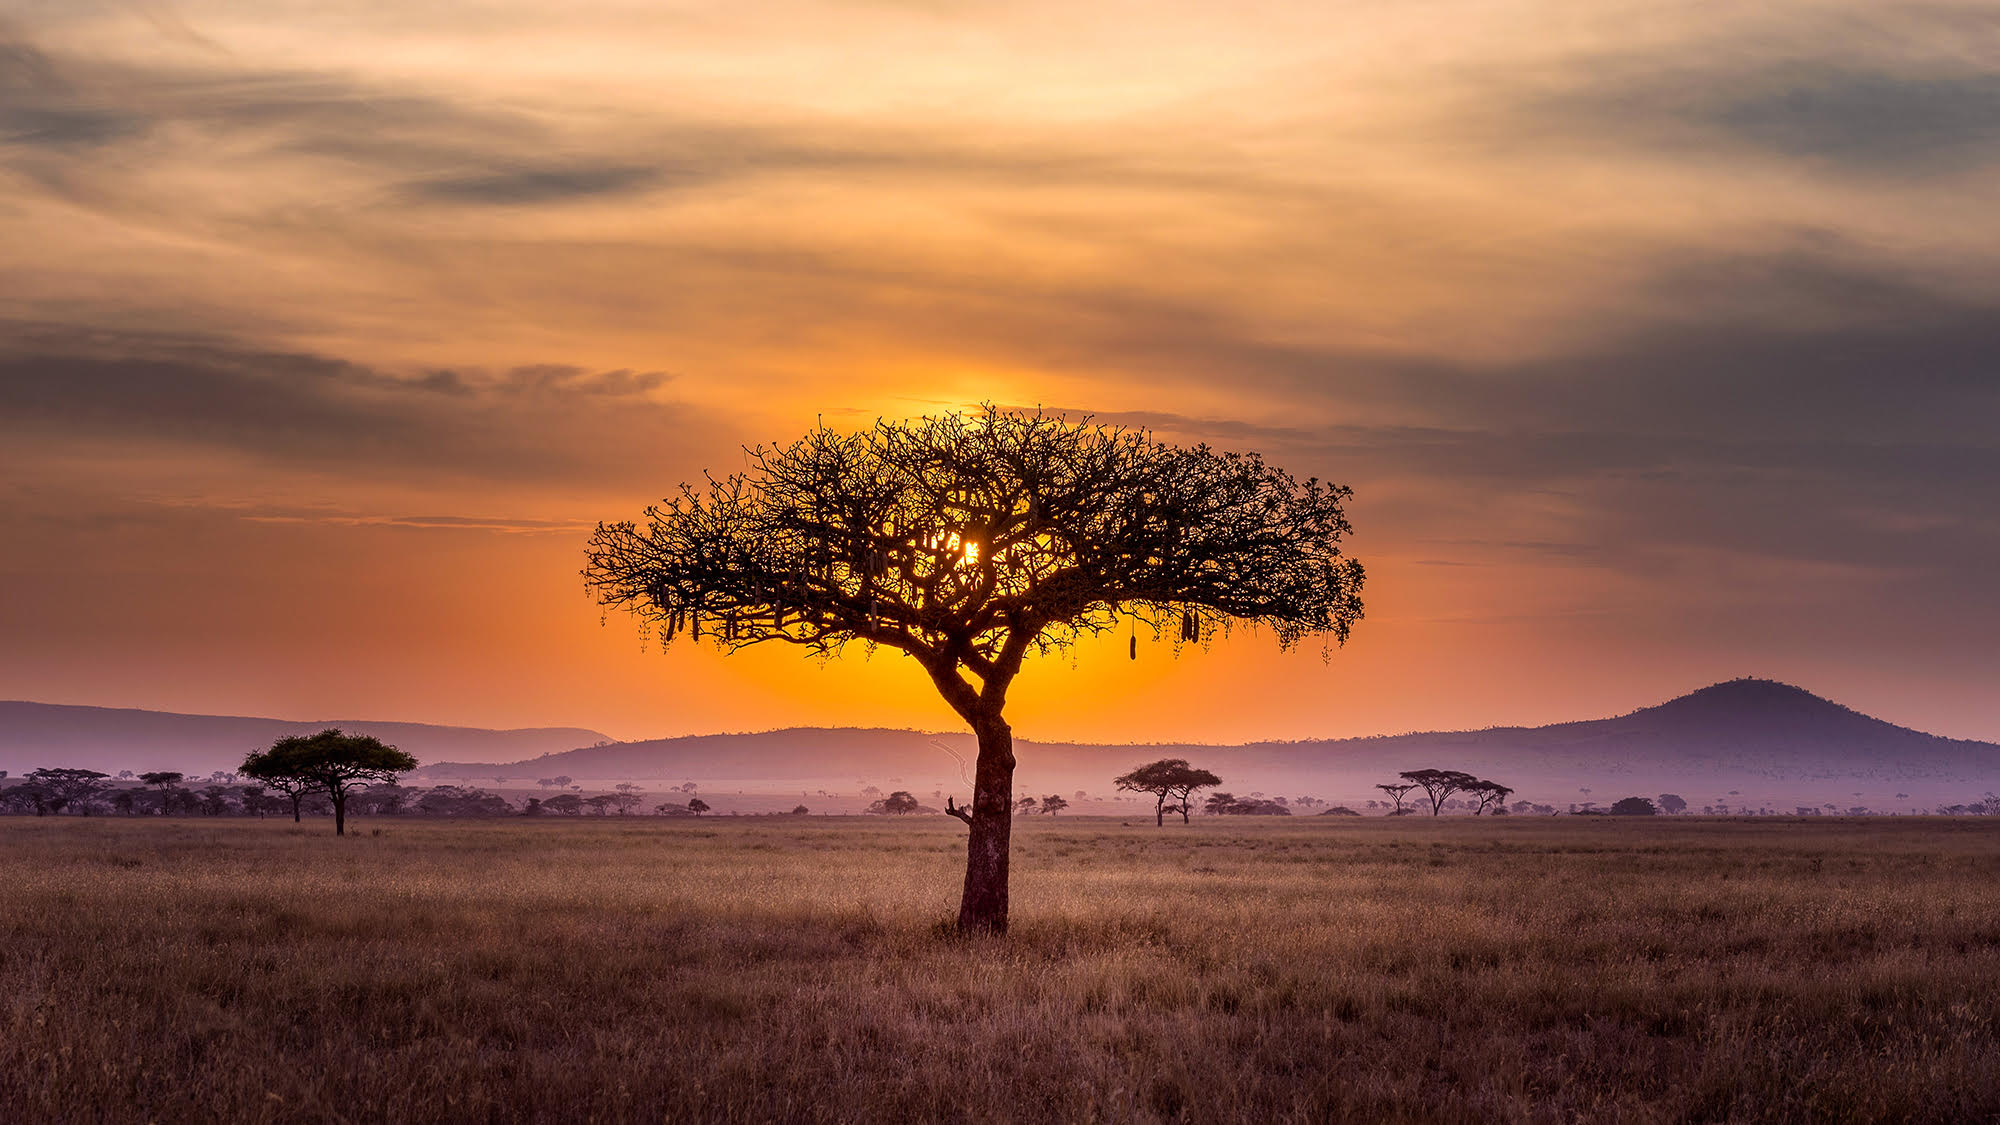 African tree standing alone in middle of field as sun sets in the background above mountains.